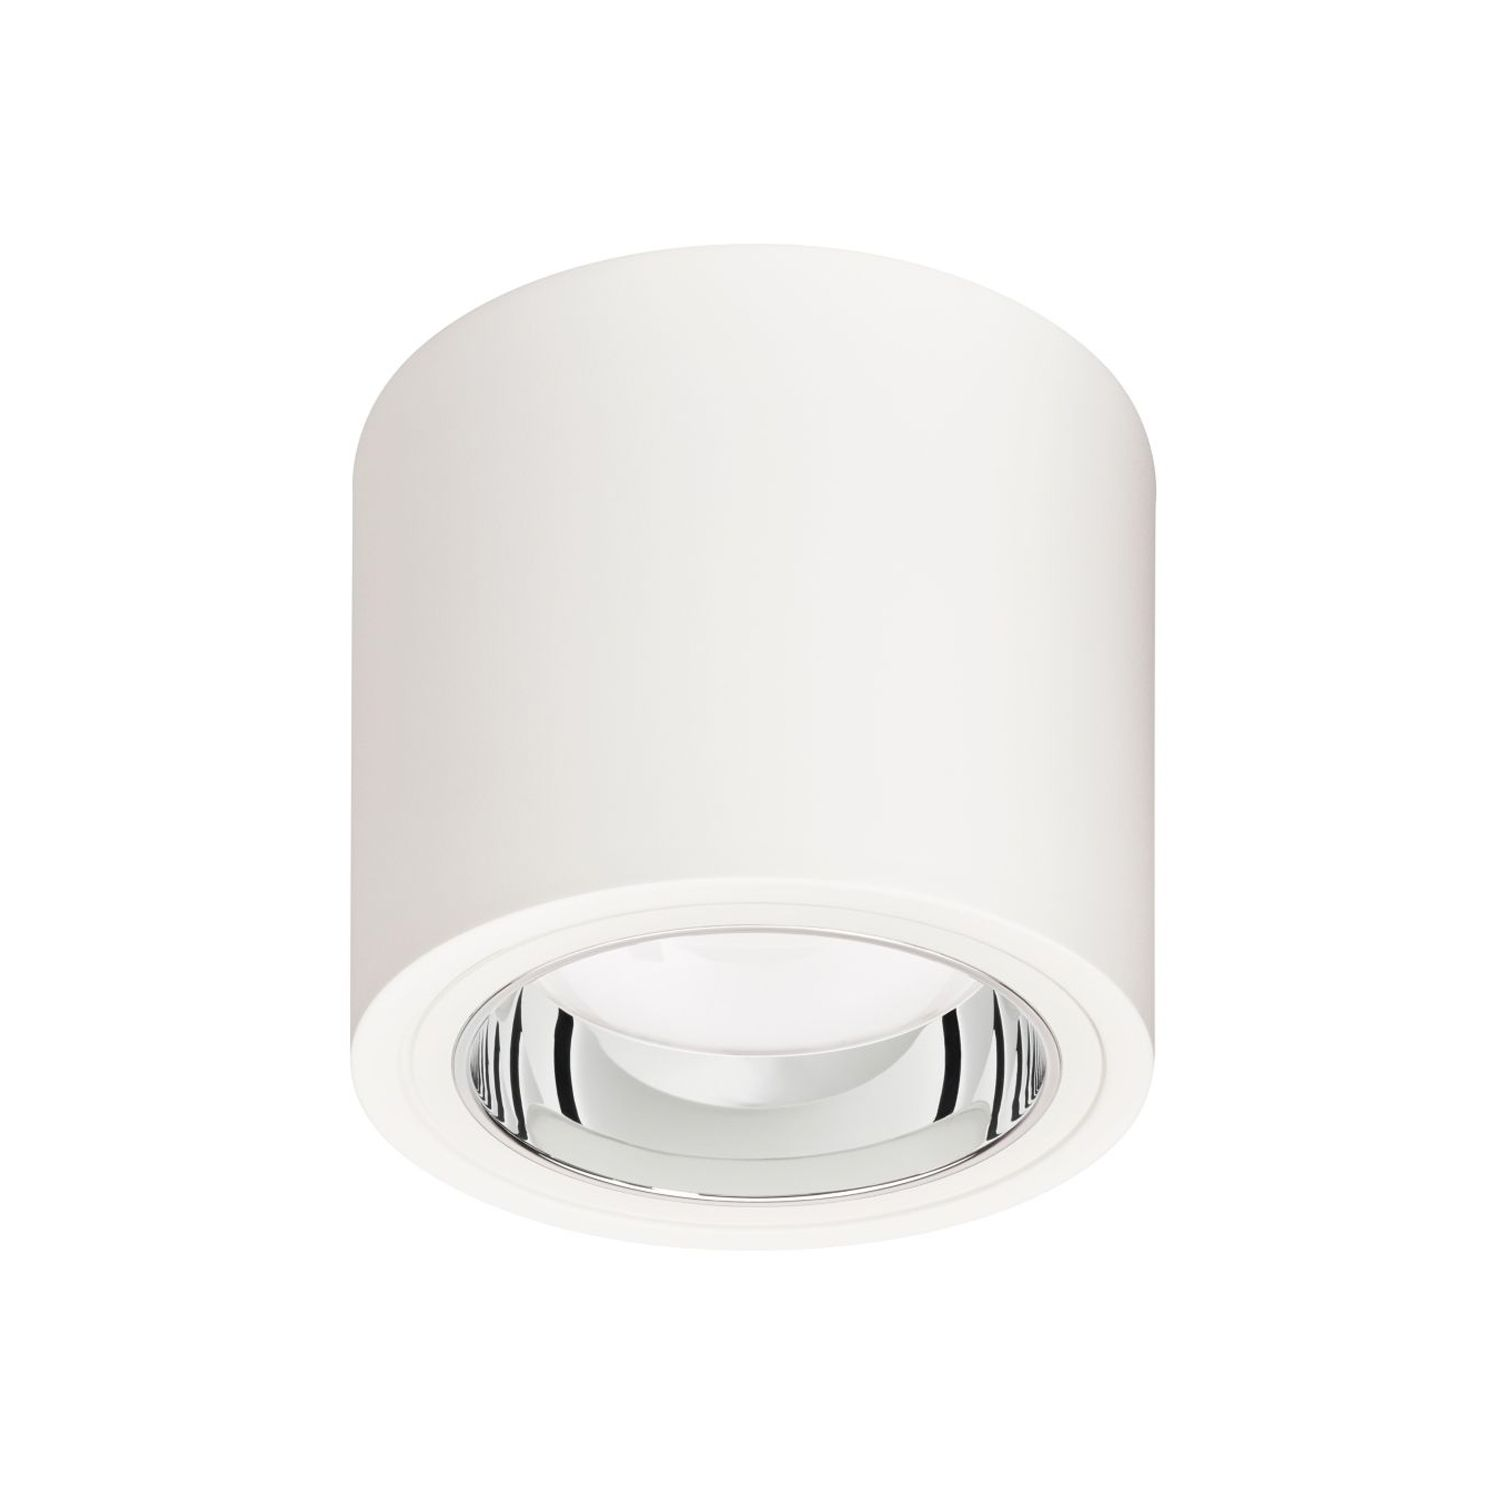 Philips Downlight LED LuxSpace Compact Low Height DN570C LED40S/840 4300lm IP20 PSU-E C Blanco | Blanco Frio